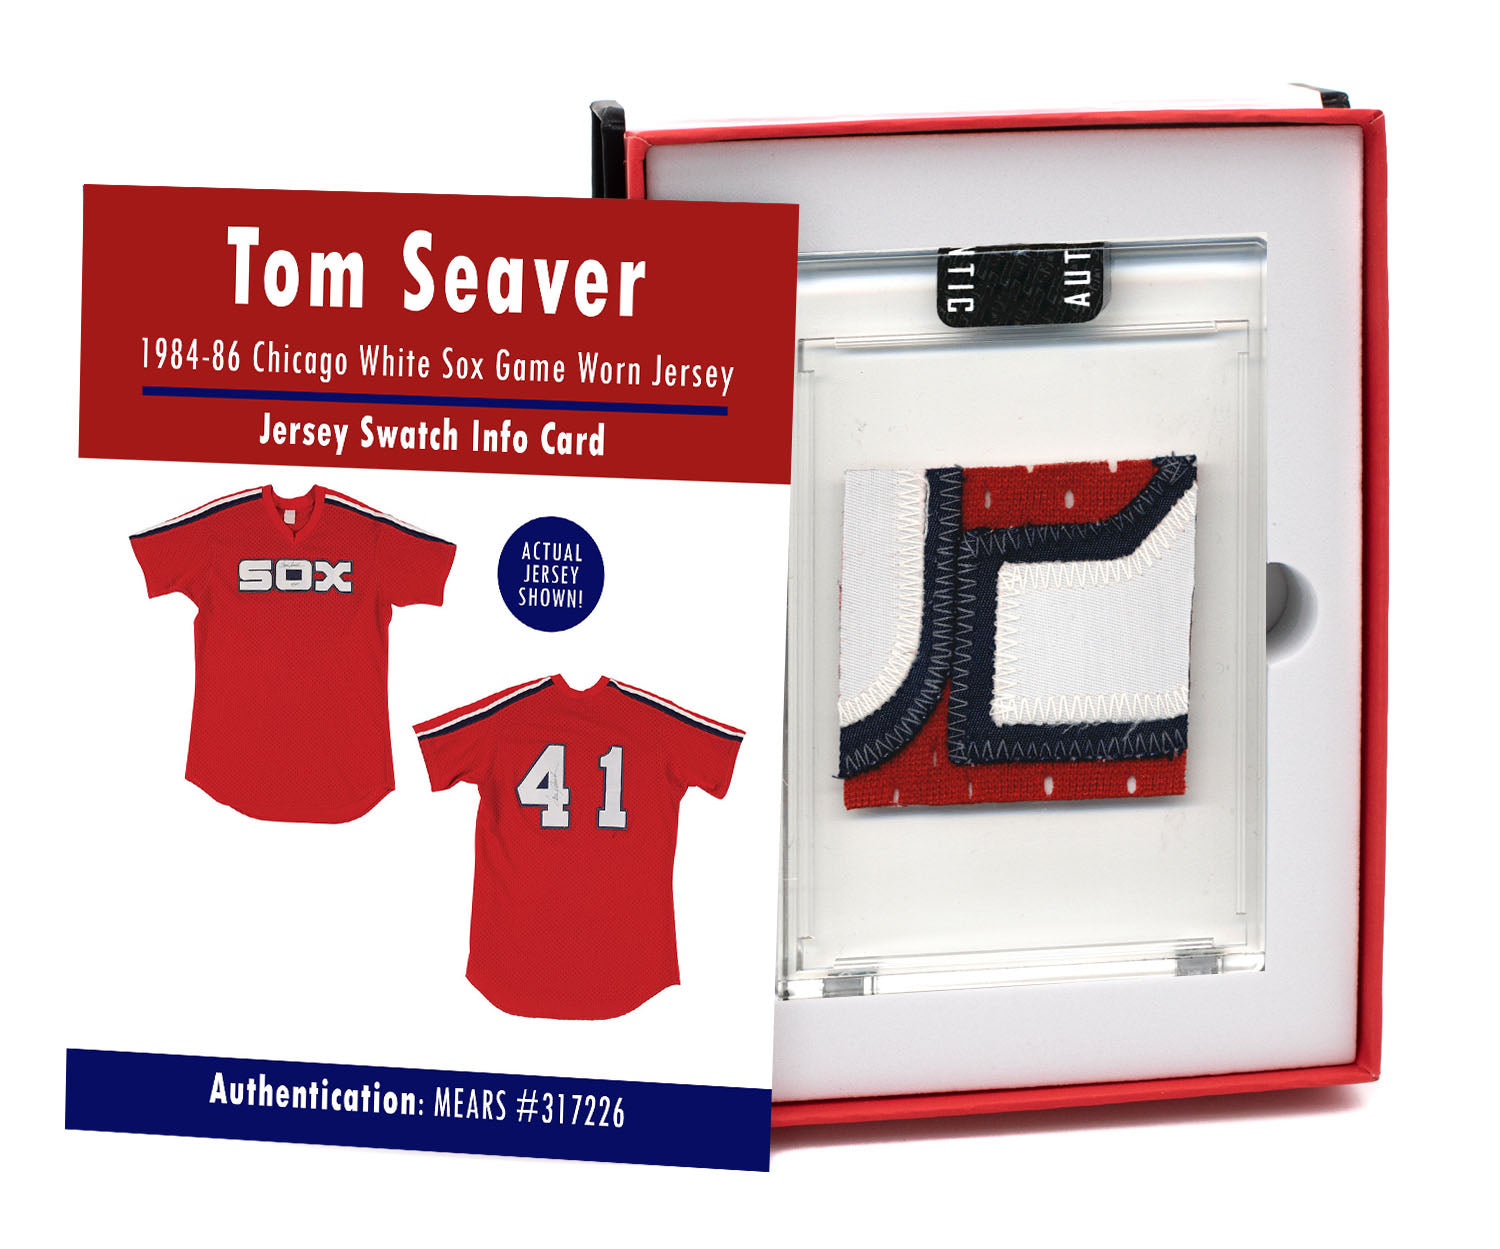 Tom Seaver 1984 White Sox Game Worn Jersey Mystery Swatch Box